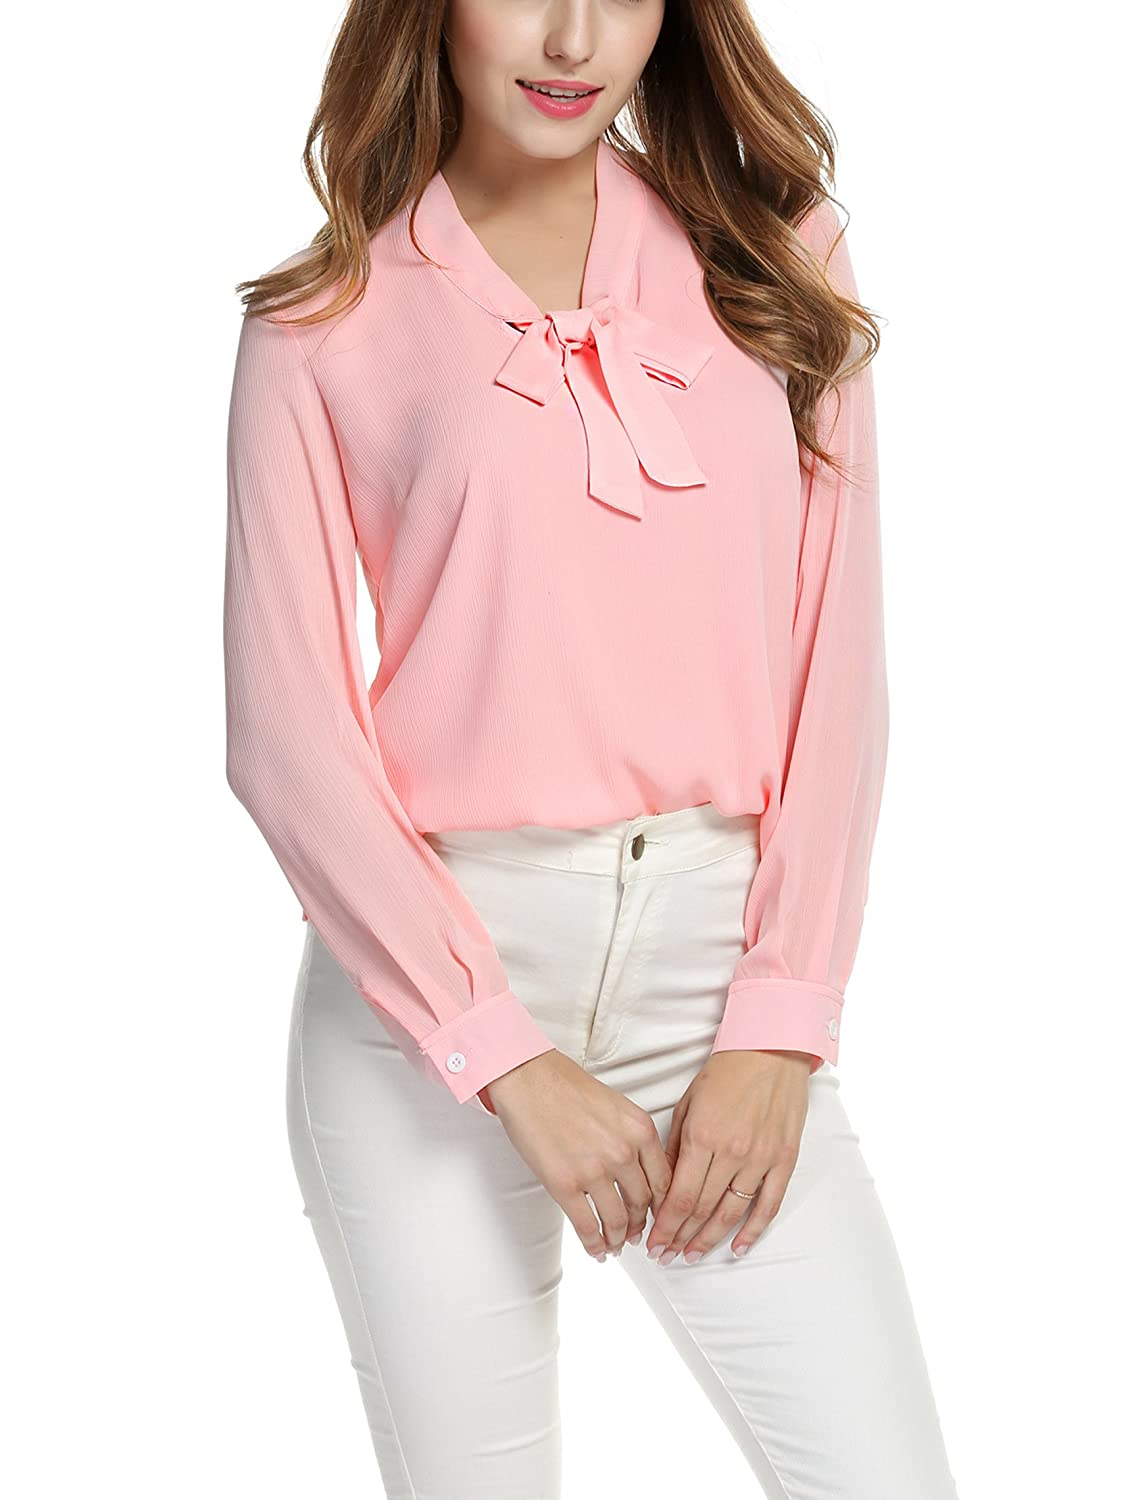 194086b201547 Amazon.com  ACEVOG Womens Bow Tie Neck Long Short Sleeve Casual Office Work  Chiffon Blouse Shirts Tops  Clothing